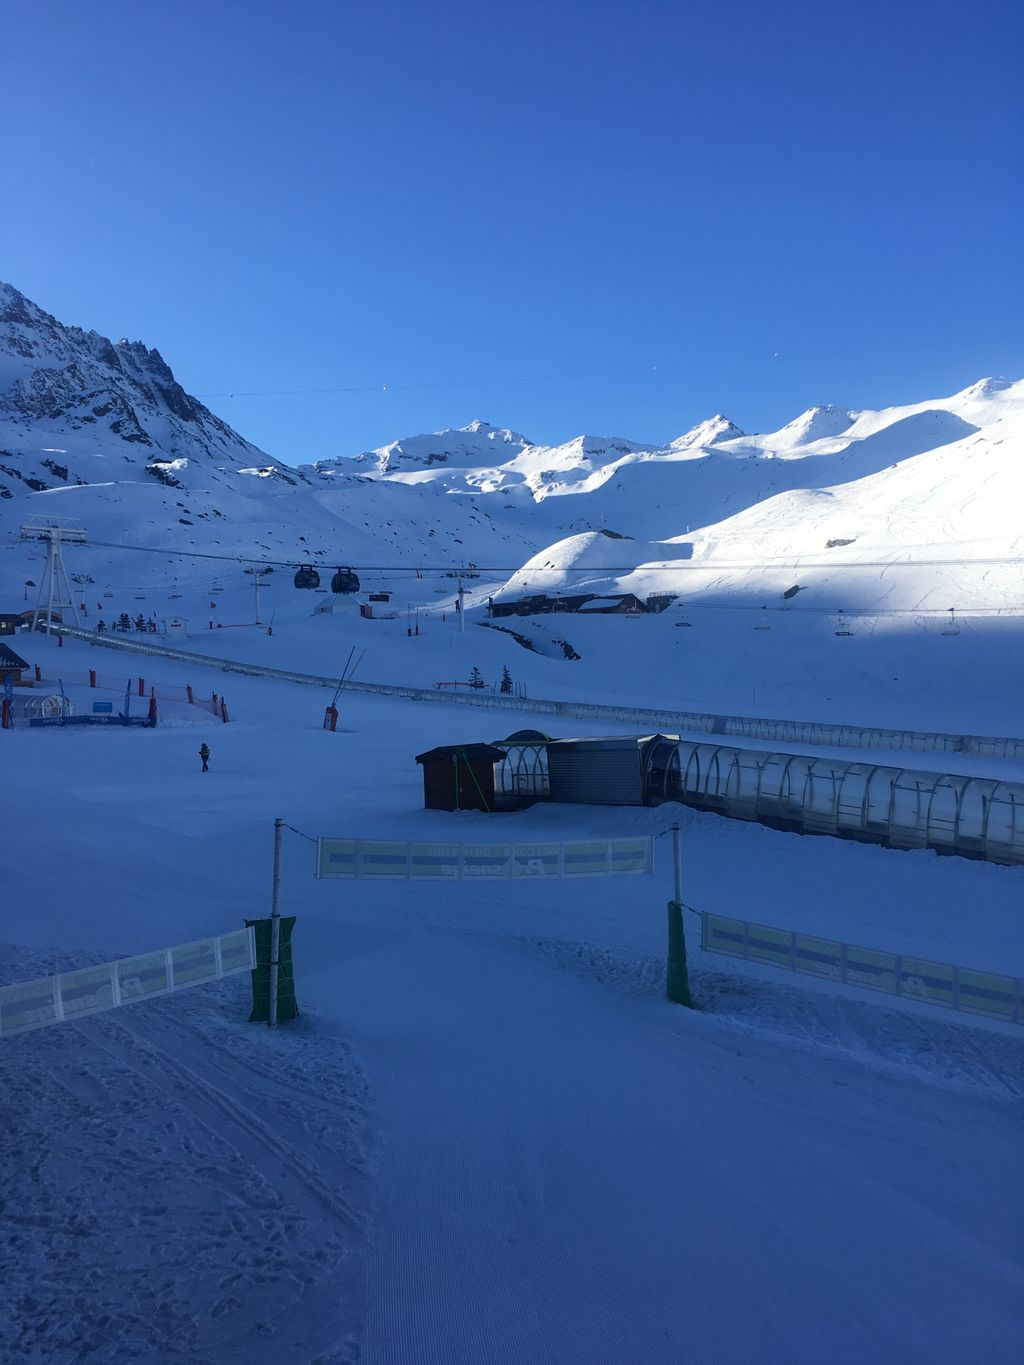 https://cdn.wintersport.nl/forum/24/c717a09f0329aa04a8981f95...